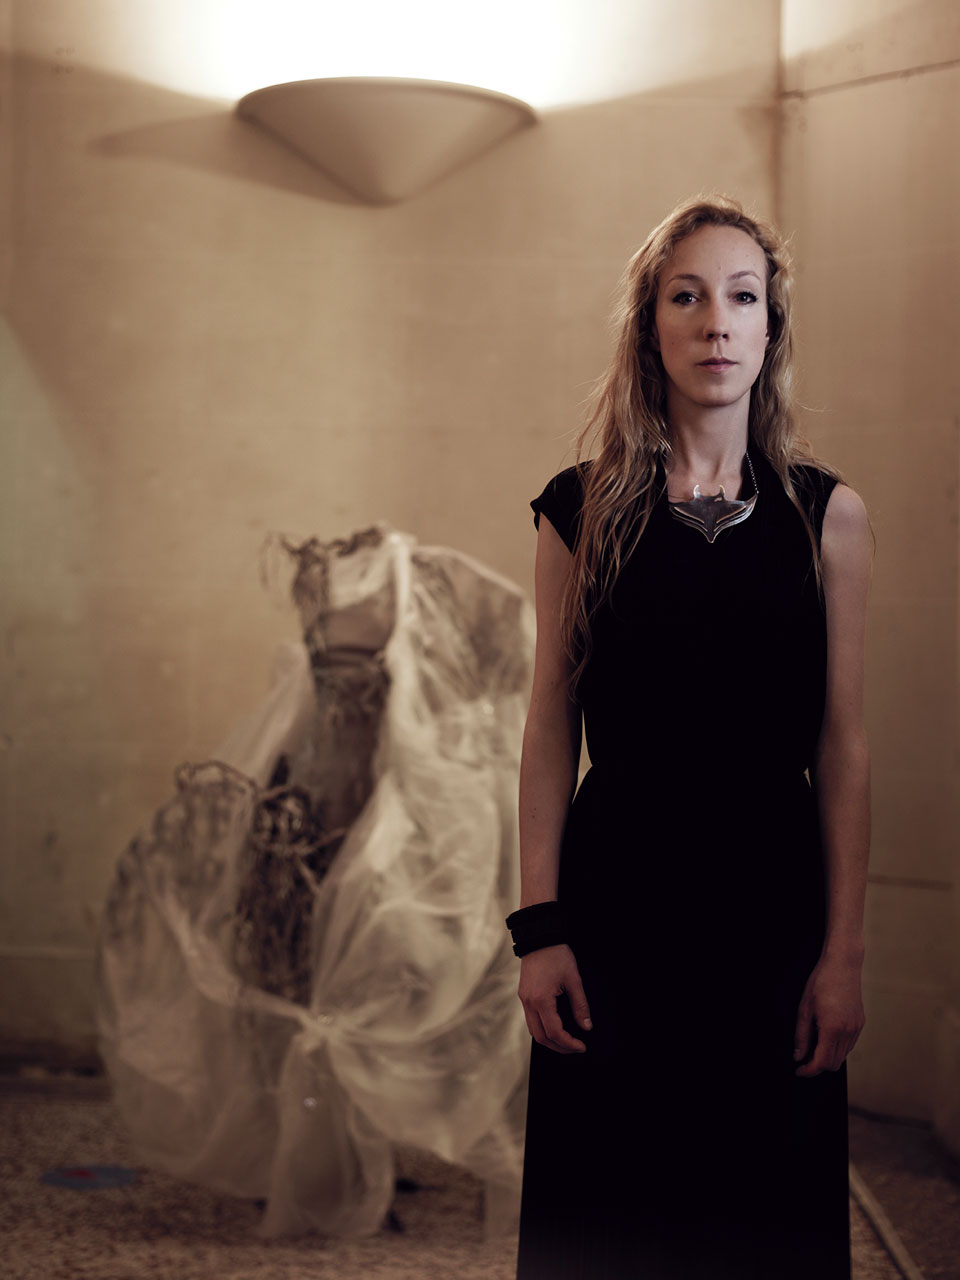 IRIS VAN HERPEN.  Photograph courtesy of Jean Baptiste Mondino, Iris van Herpen and the Phoenix Art Museum.